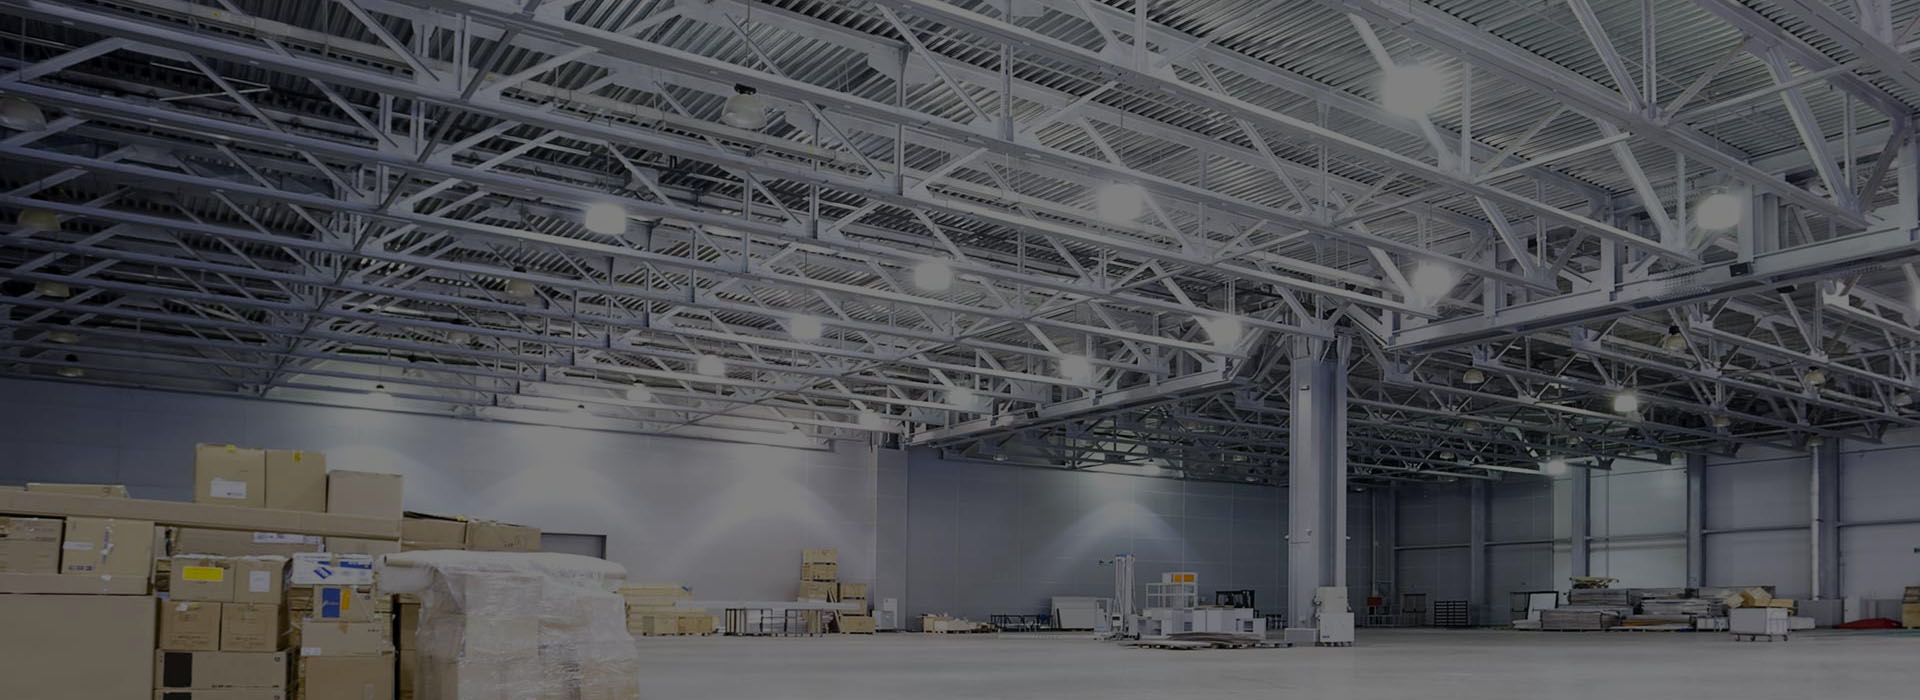 Industrial Warehouse Lighting Set Up - TELCS Lighting Design & Consultancy